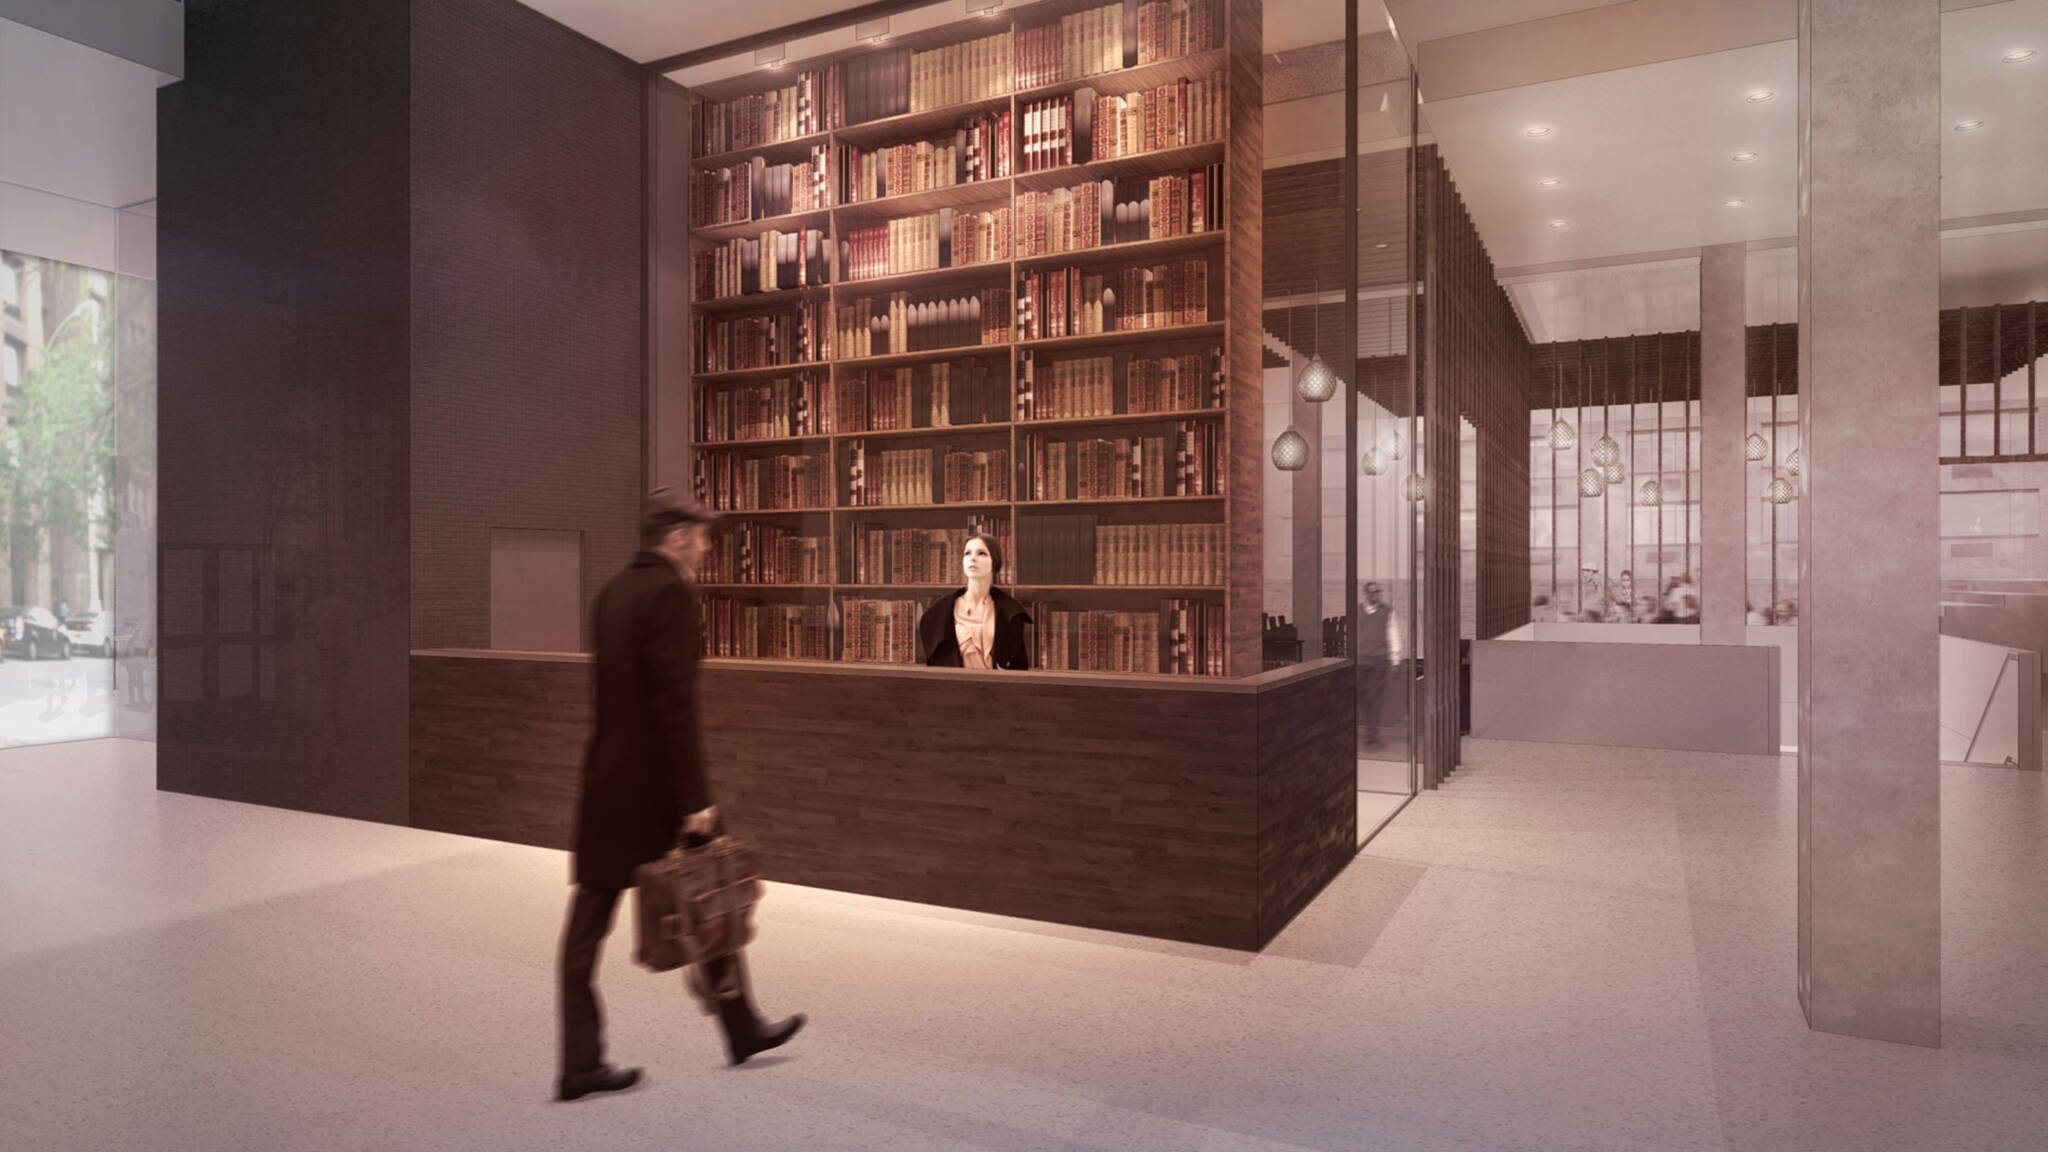 Front desk of the American Bible Society project located at the Upper West Side, New York City designed by the architecture studio Danny Forster & Architecture